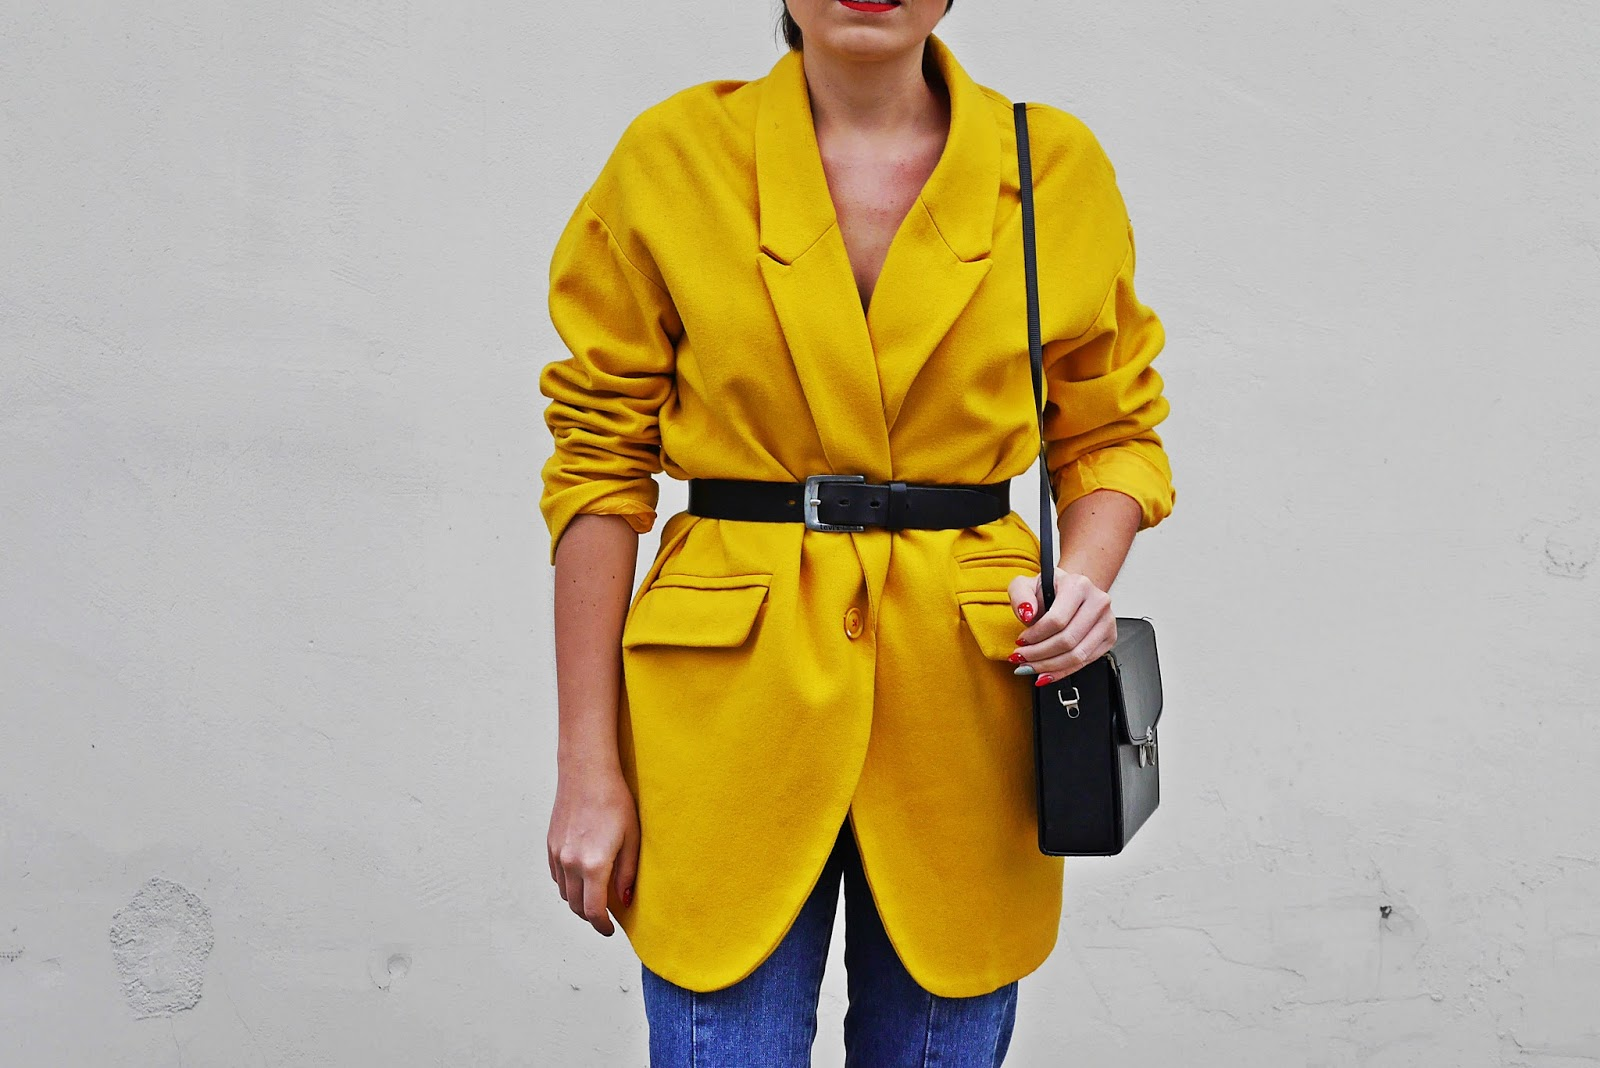 8_yellow_coat_white_shoes_blue_jeans_karyn_blog_modowy_261117a